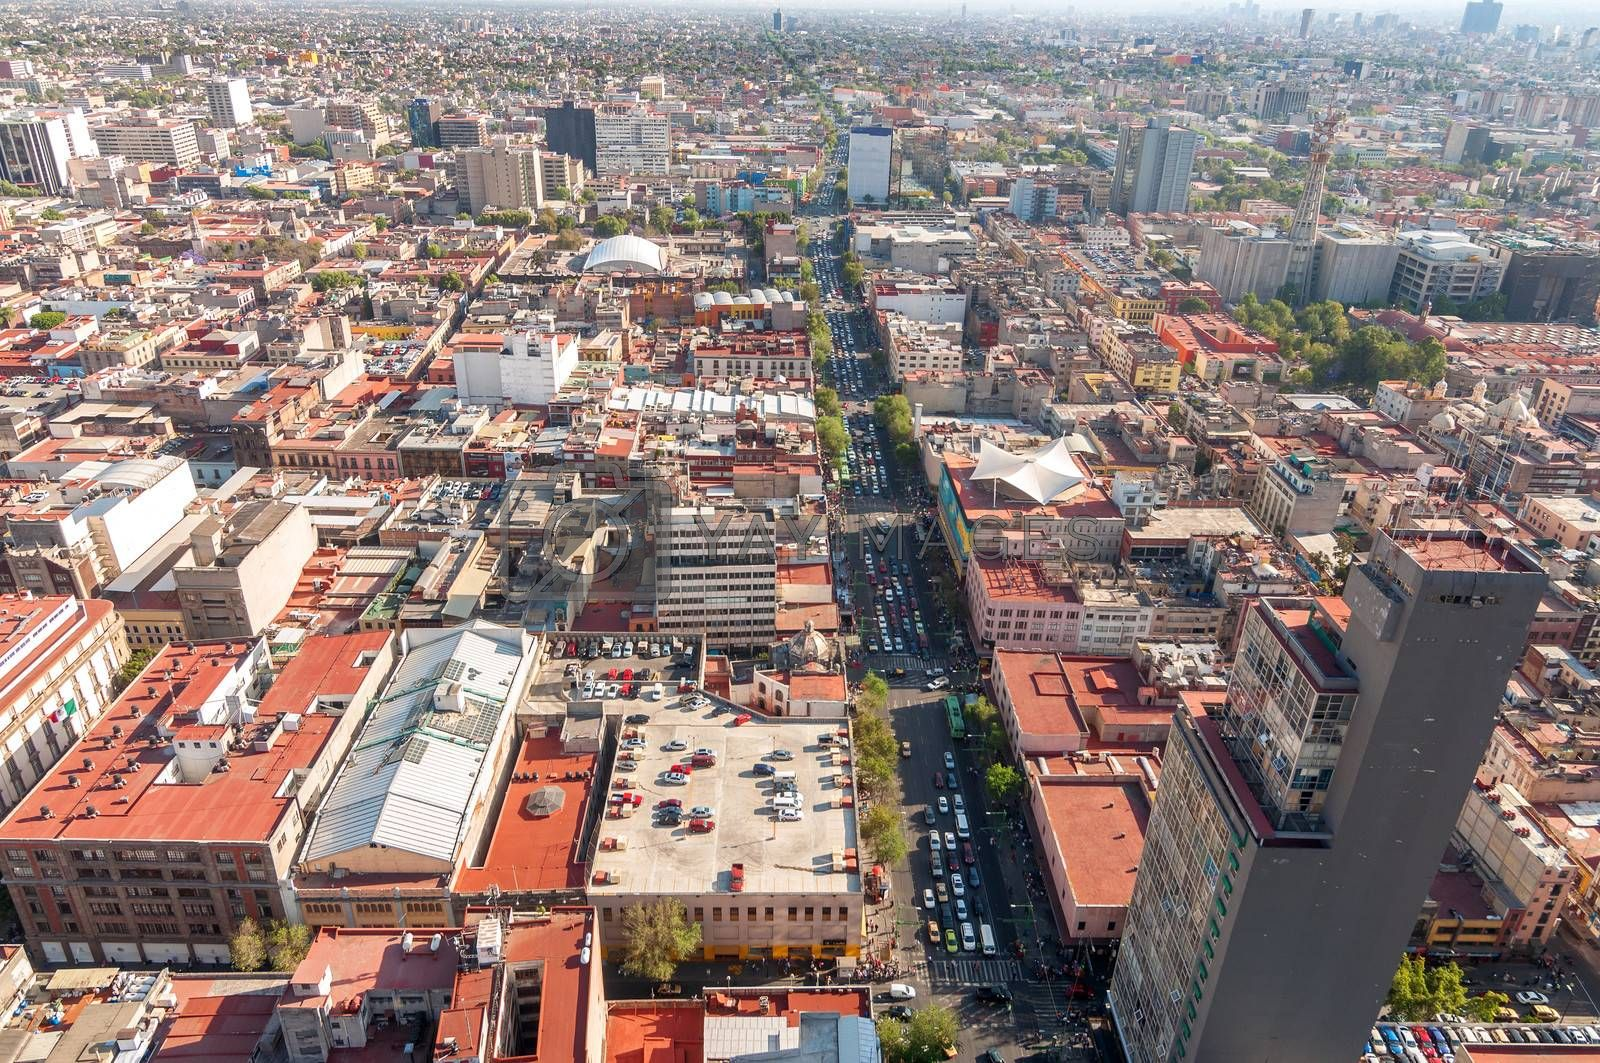 Wide angle view of Mexico City